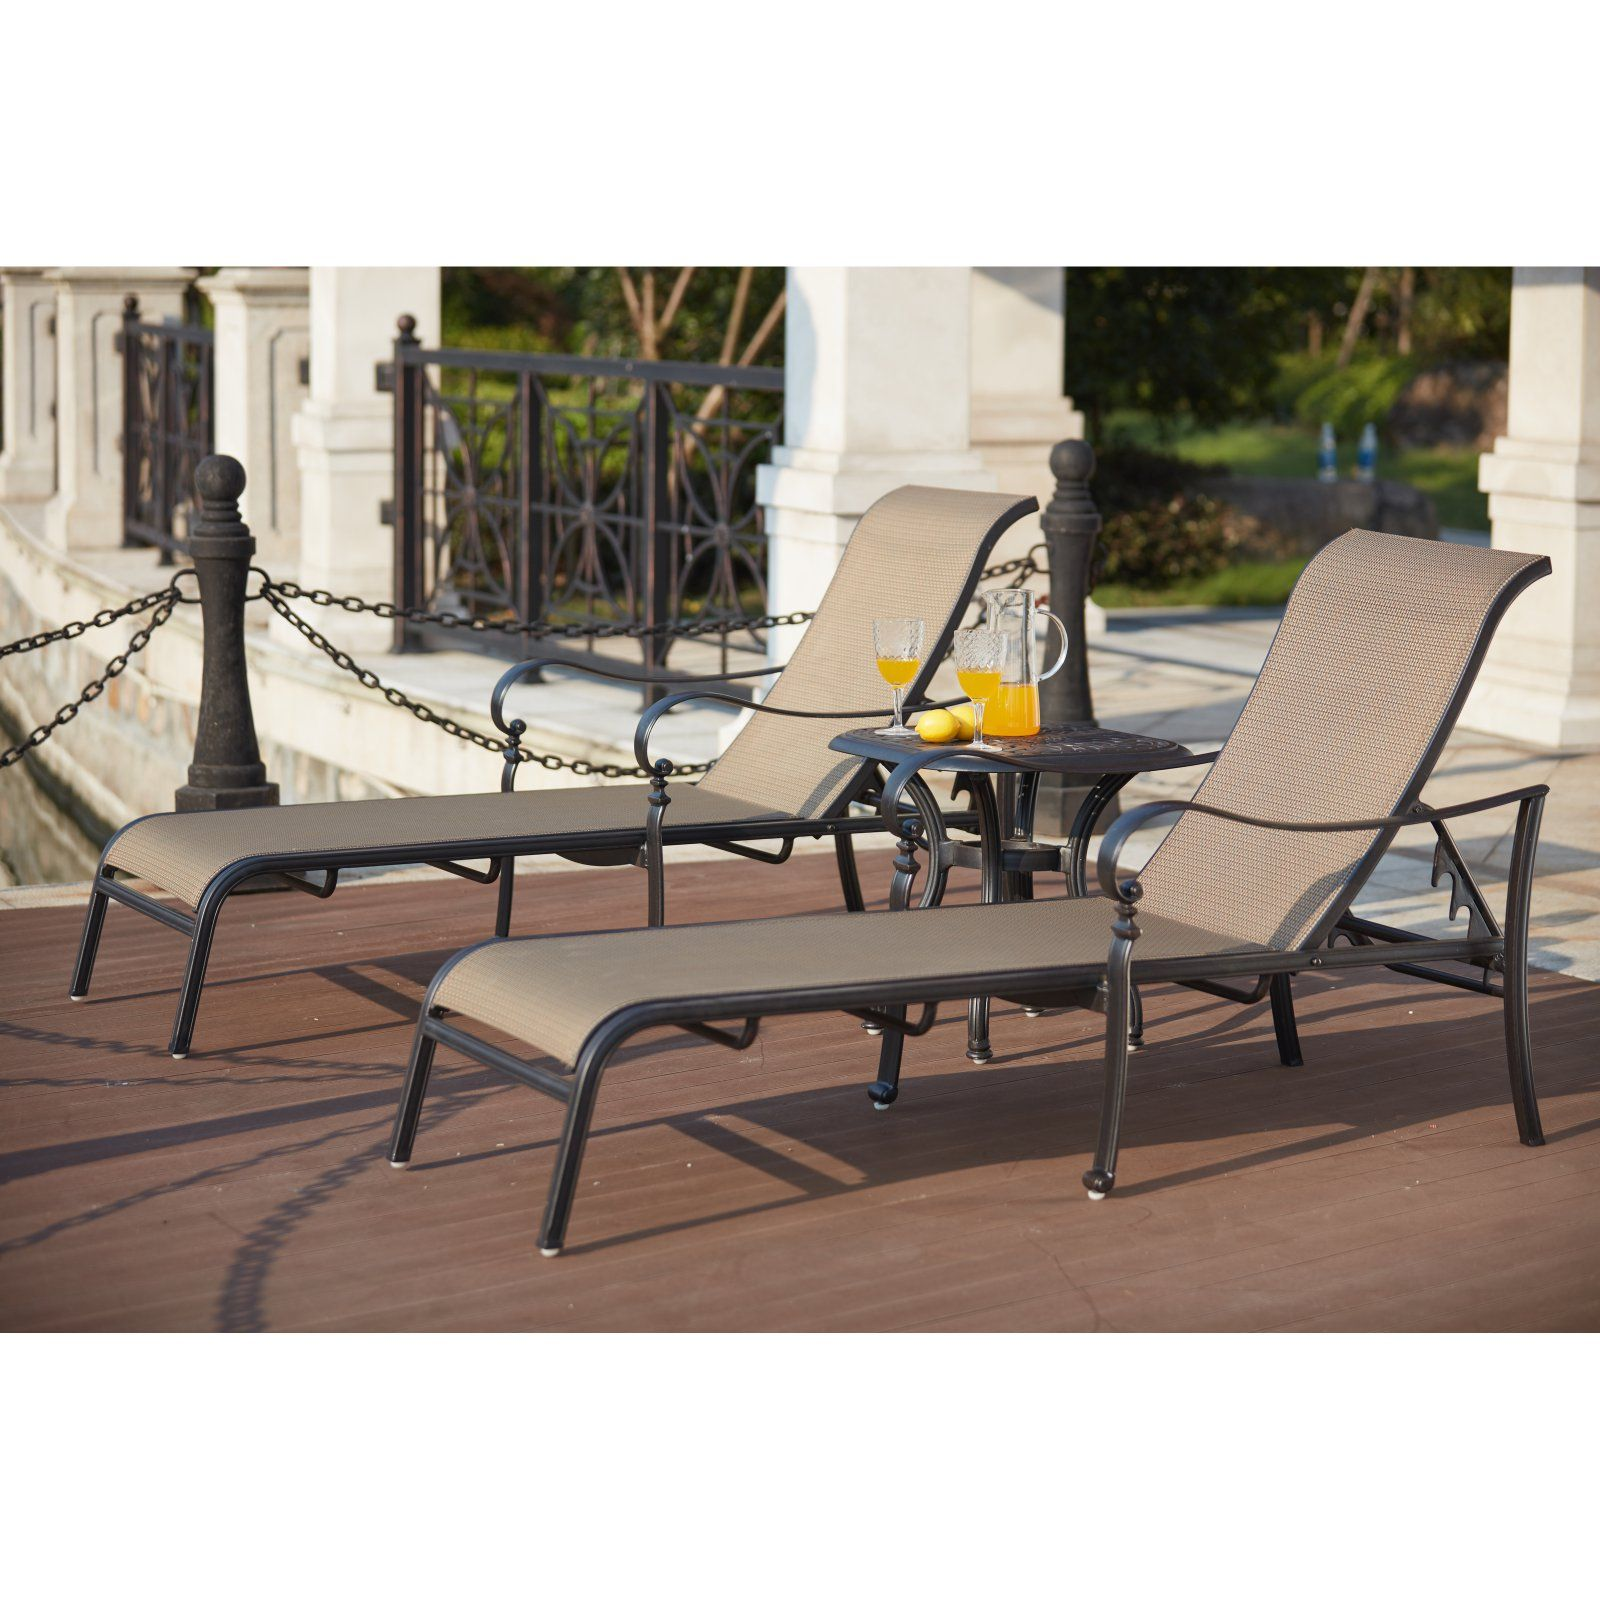 Piece Aluminum Outdoor Chaise Lounge